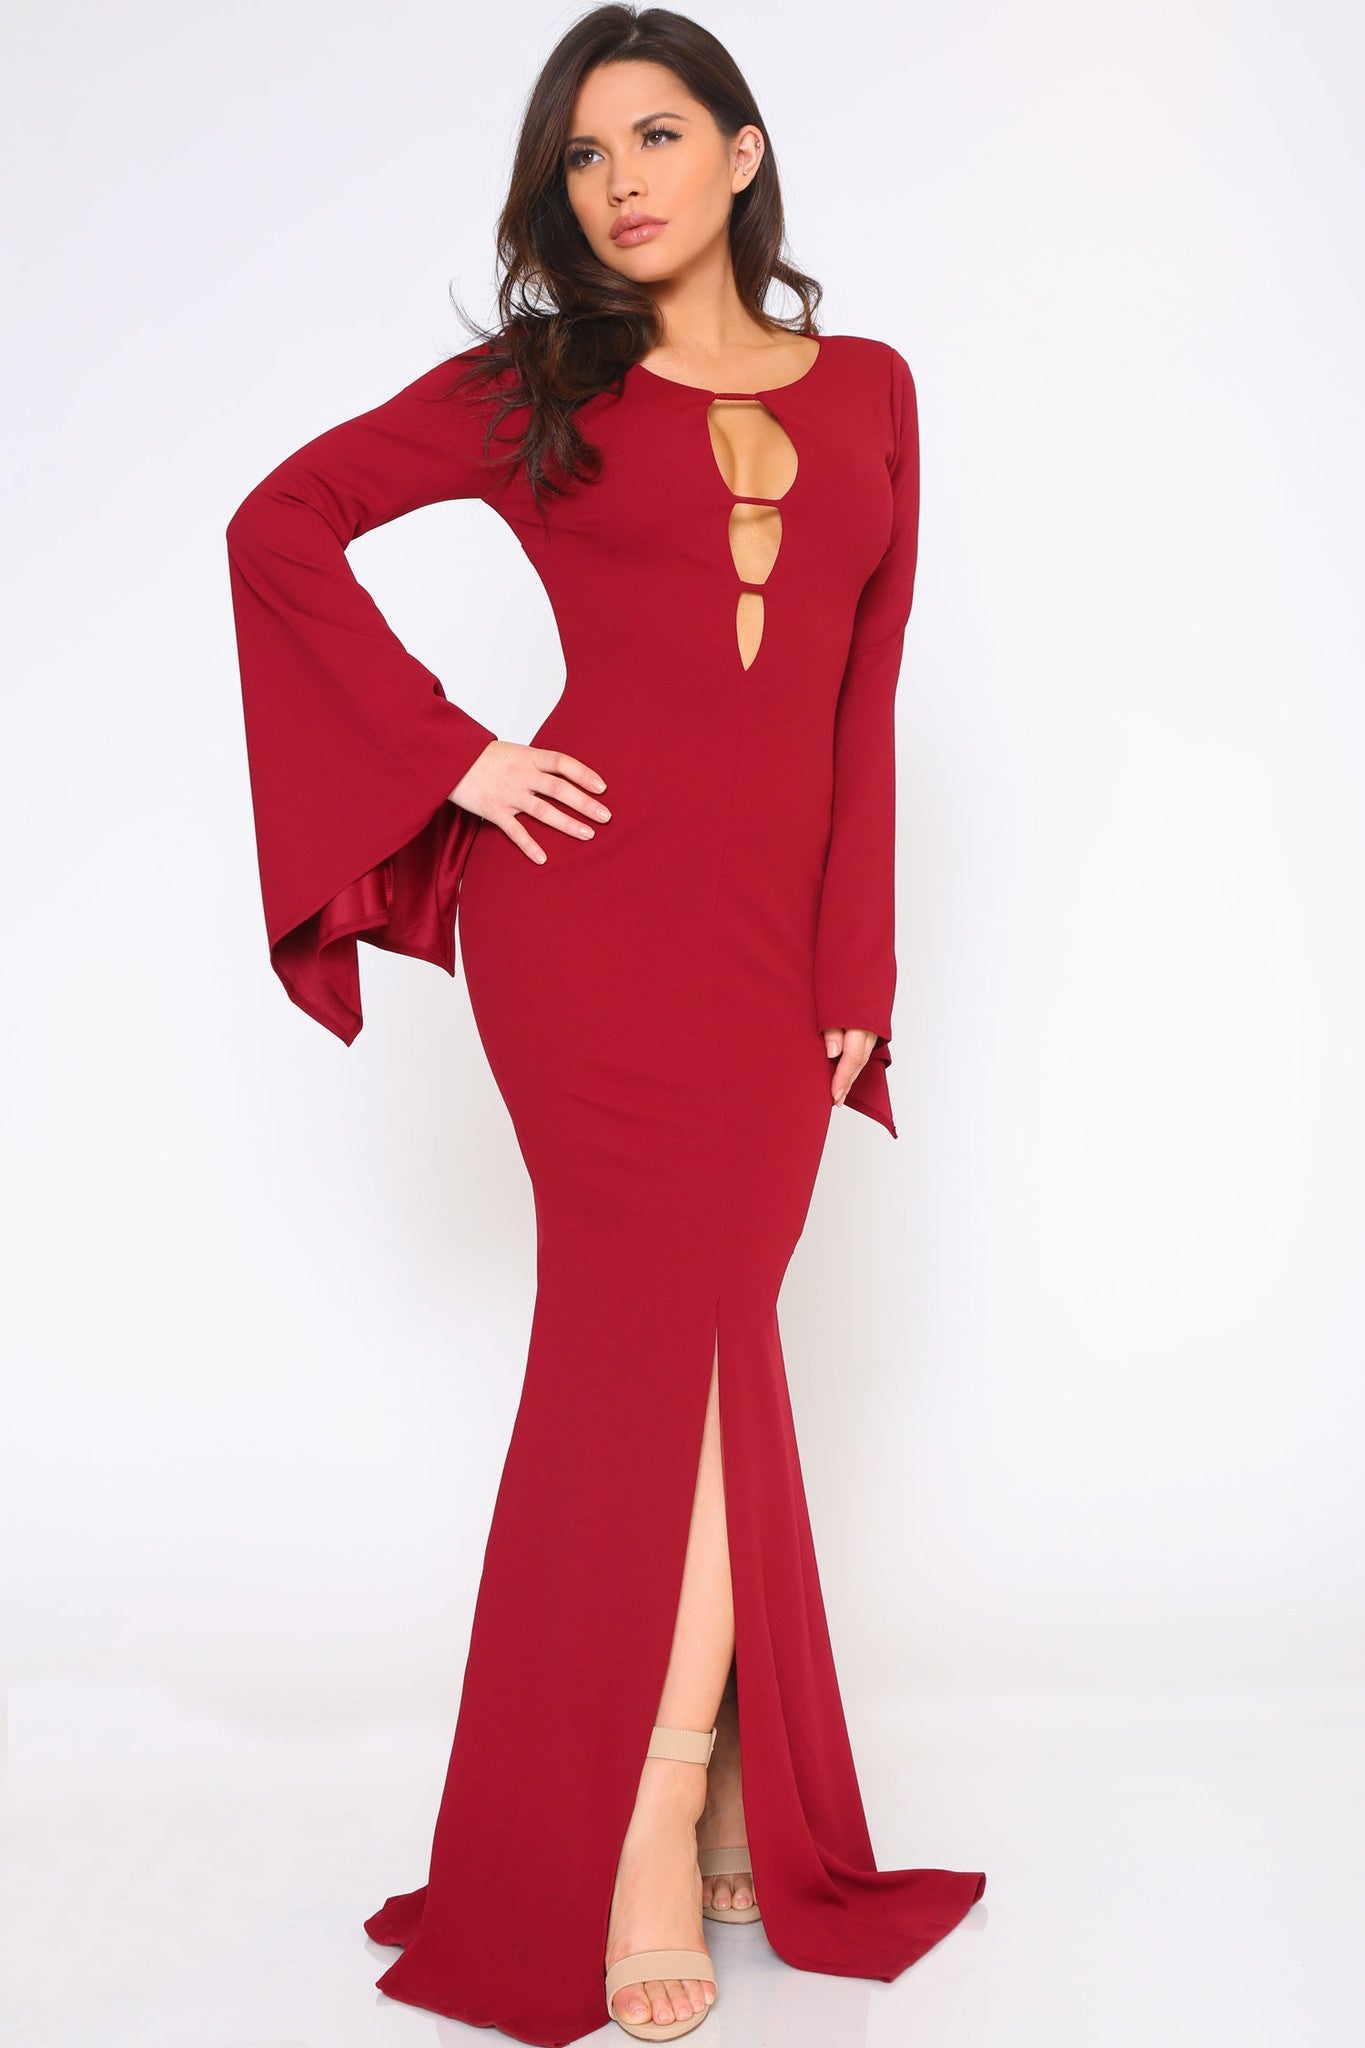 MANDY DRESS - Glam Envy - 1